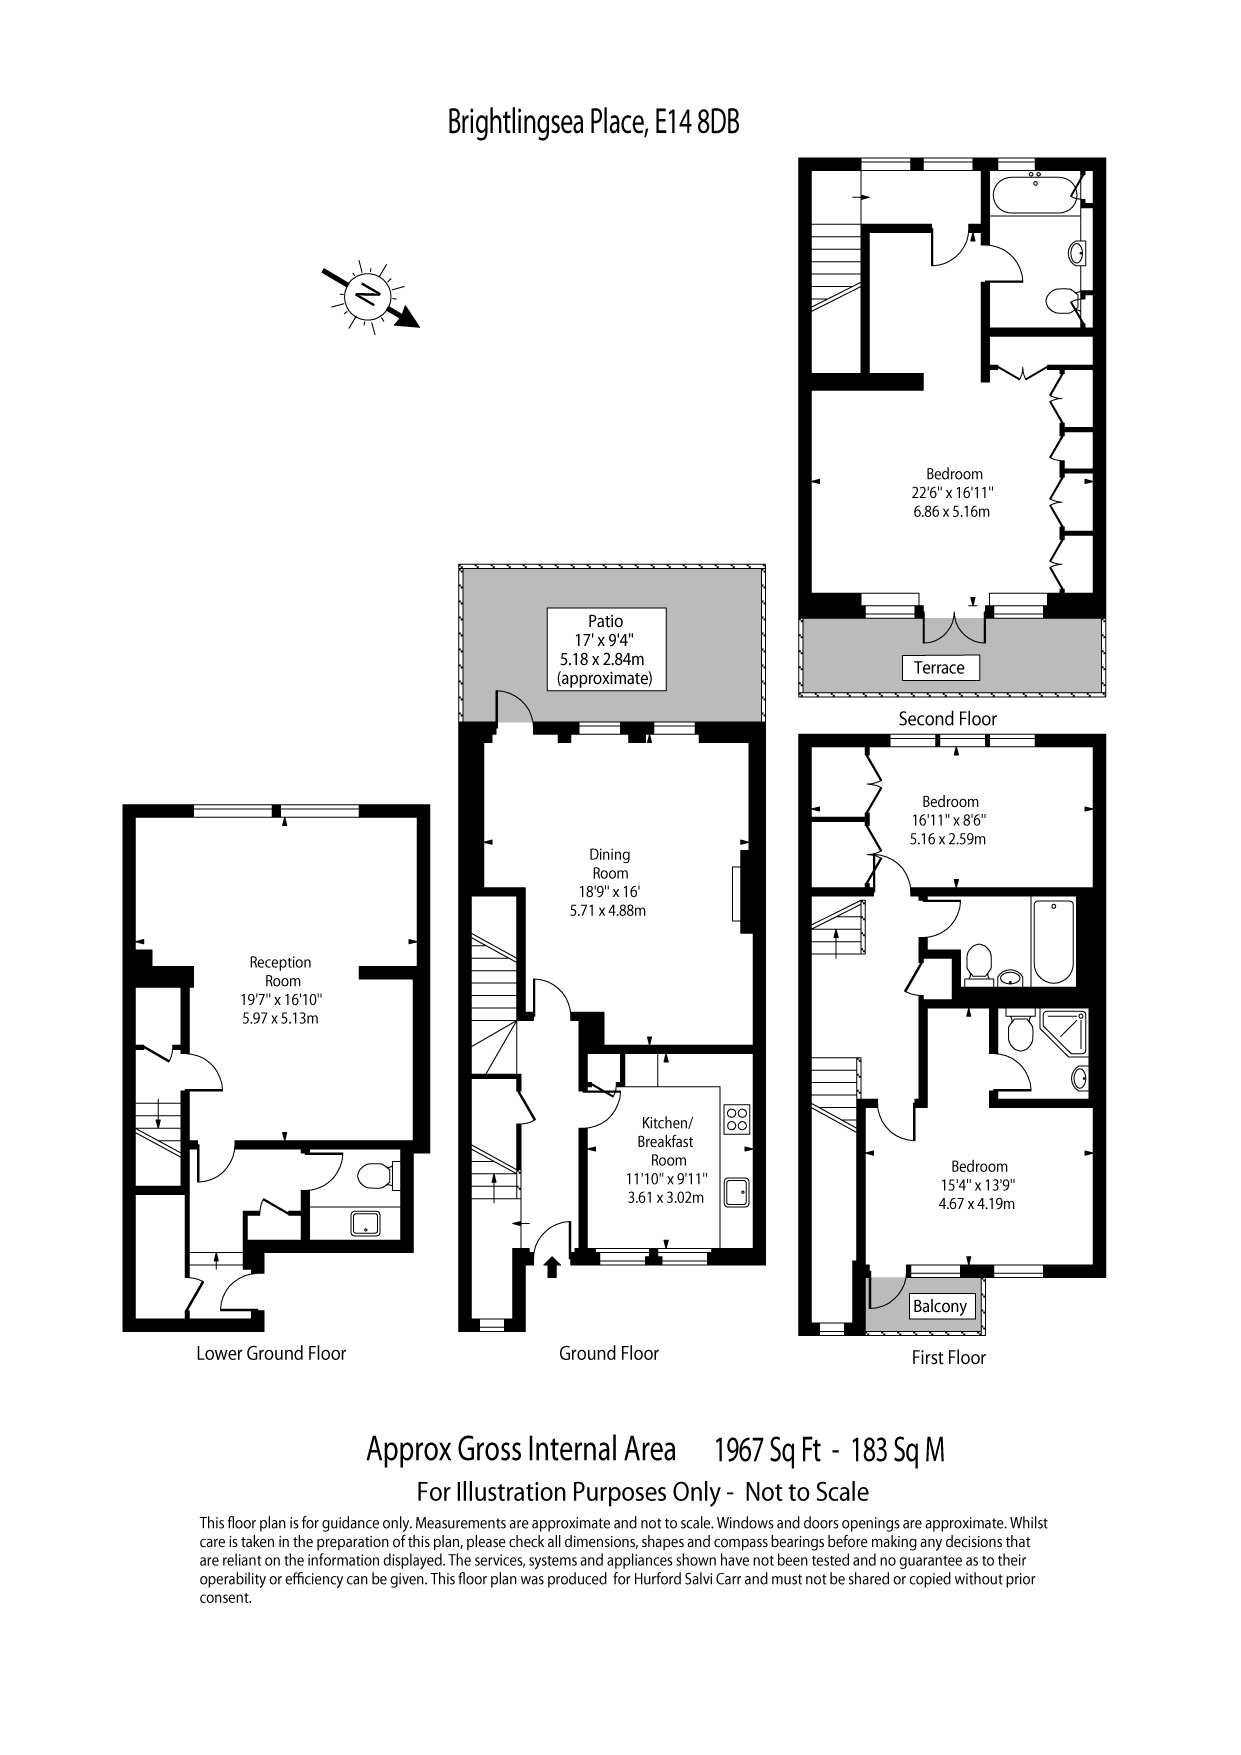 Brightlingsea Place, Limehouse, E14 floorplan